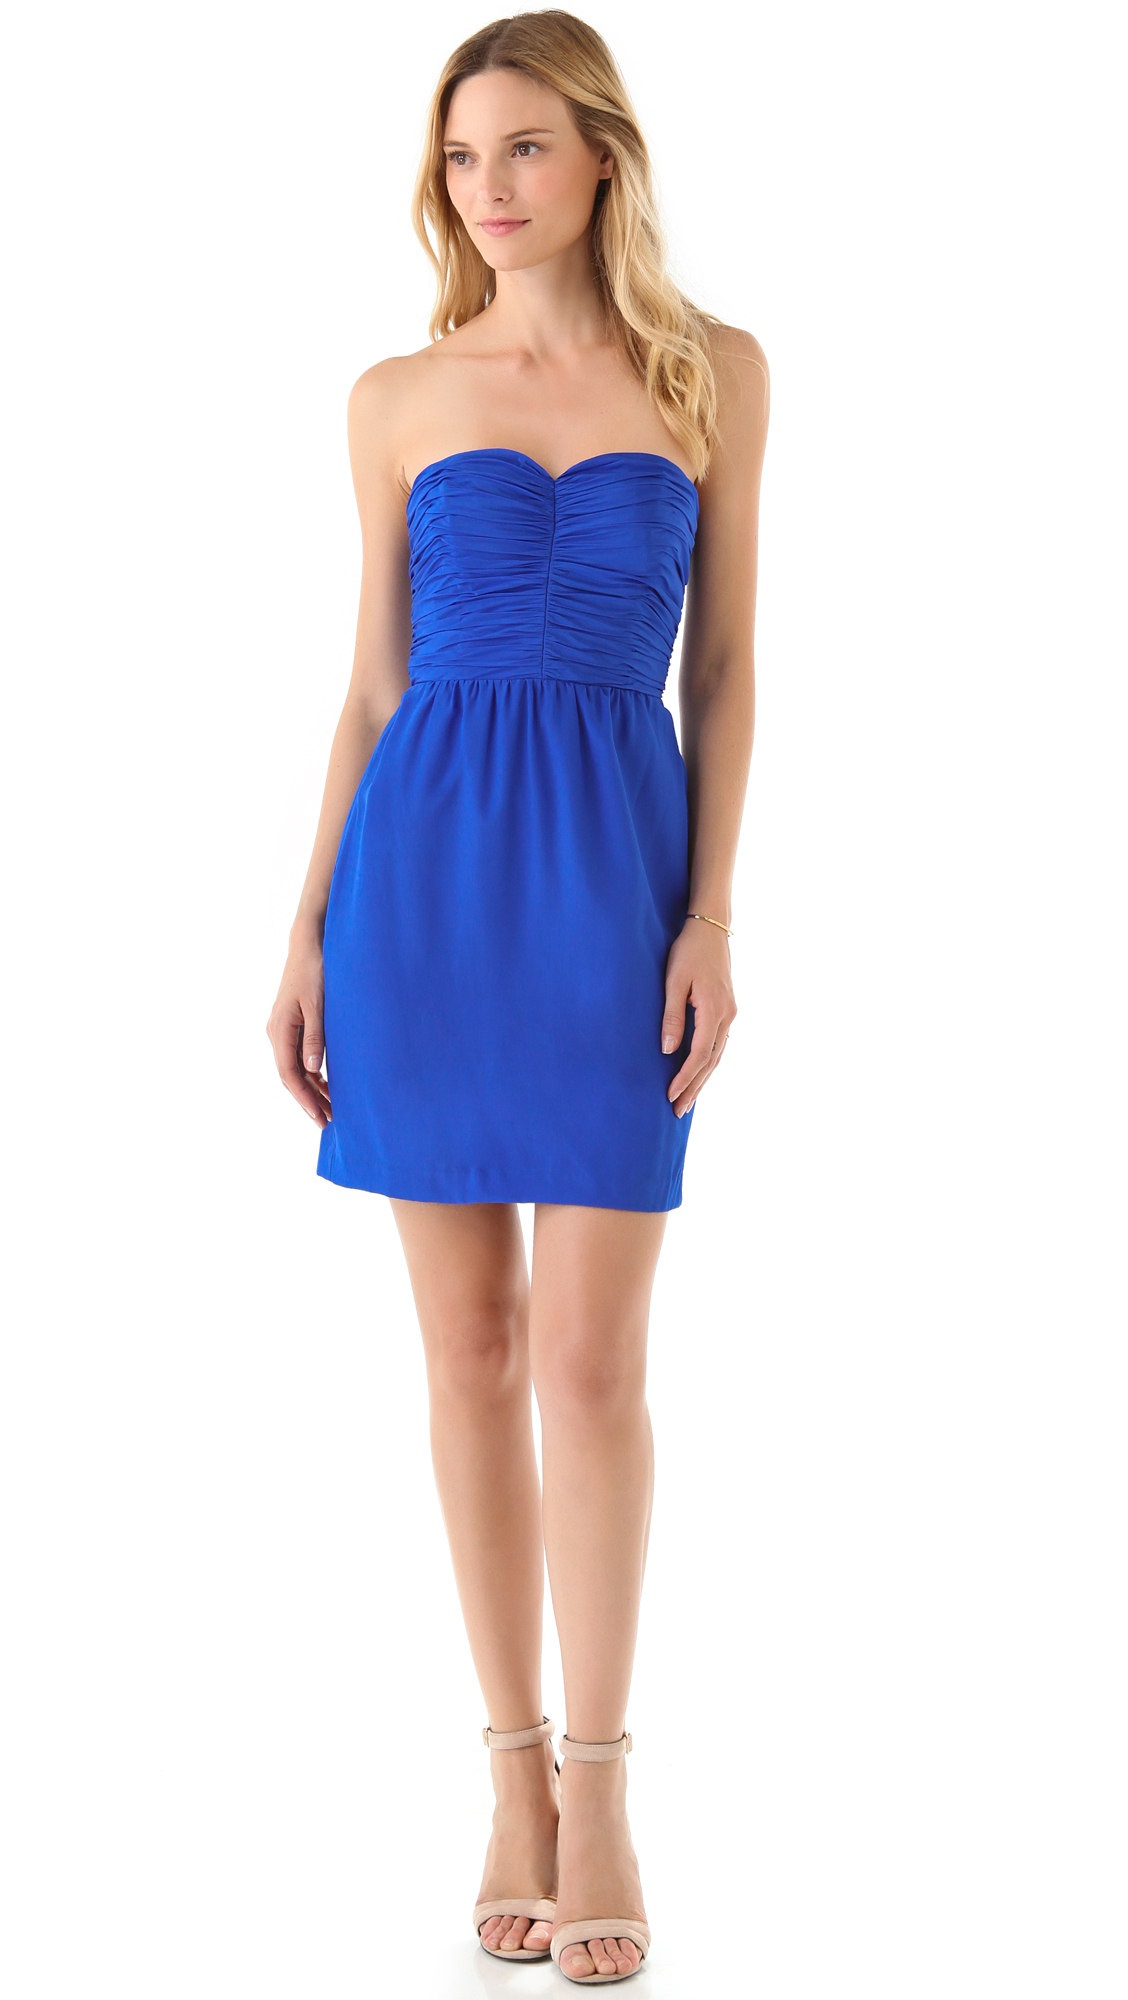 Rebecca taylor Sweetheart Strapless Dress in Blue - Lyst